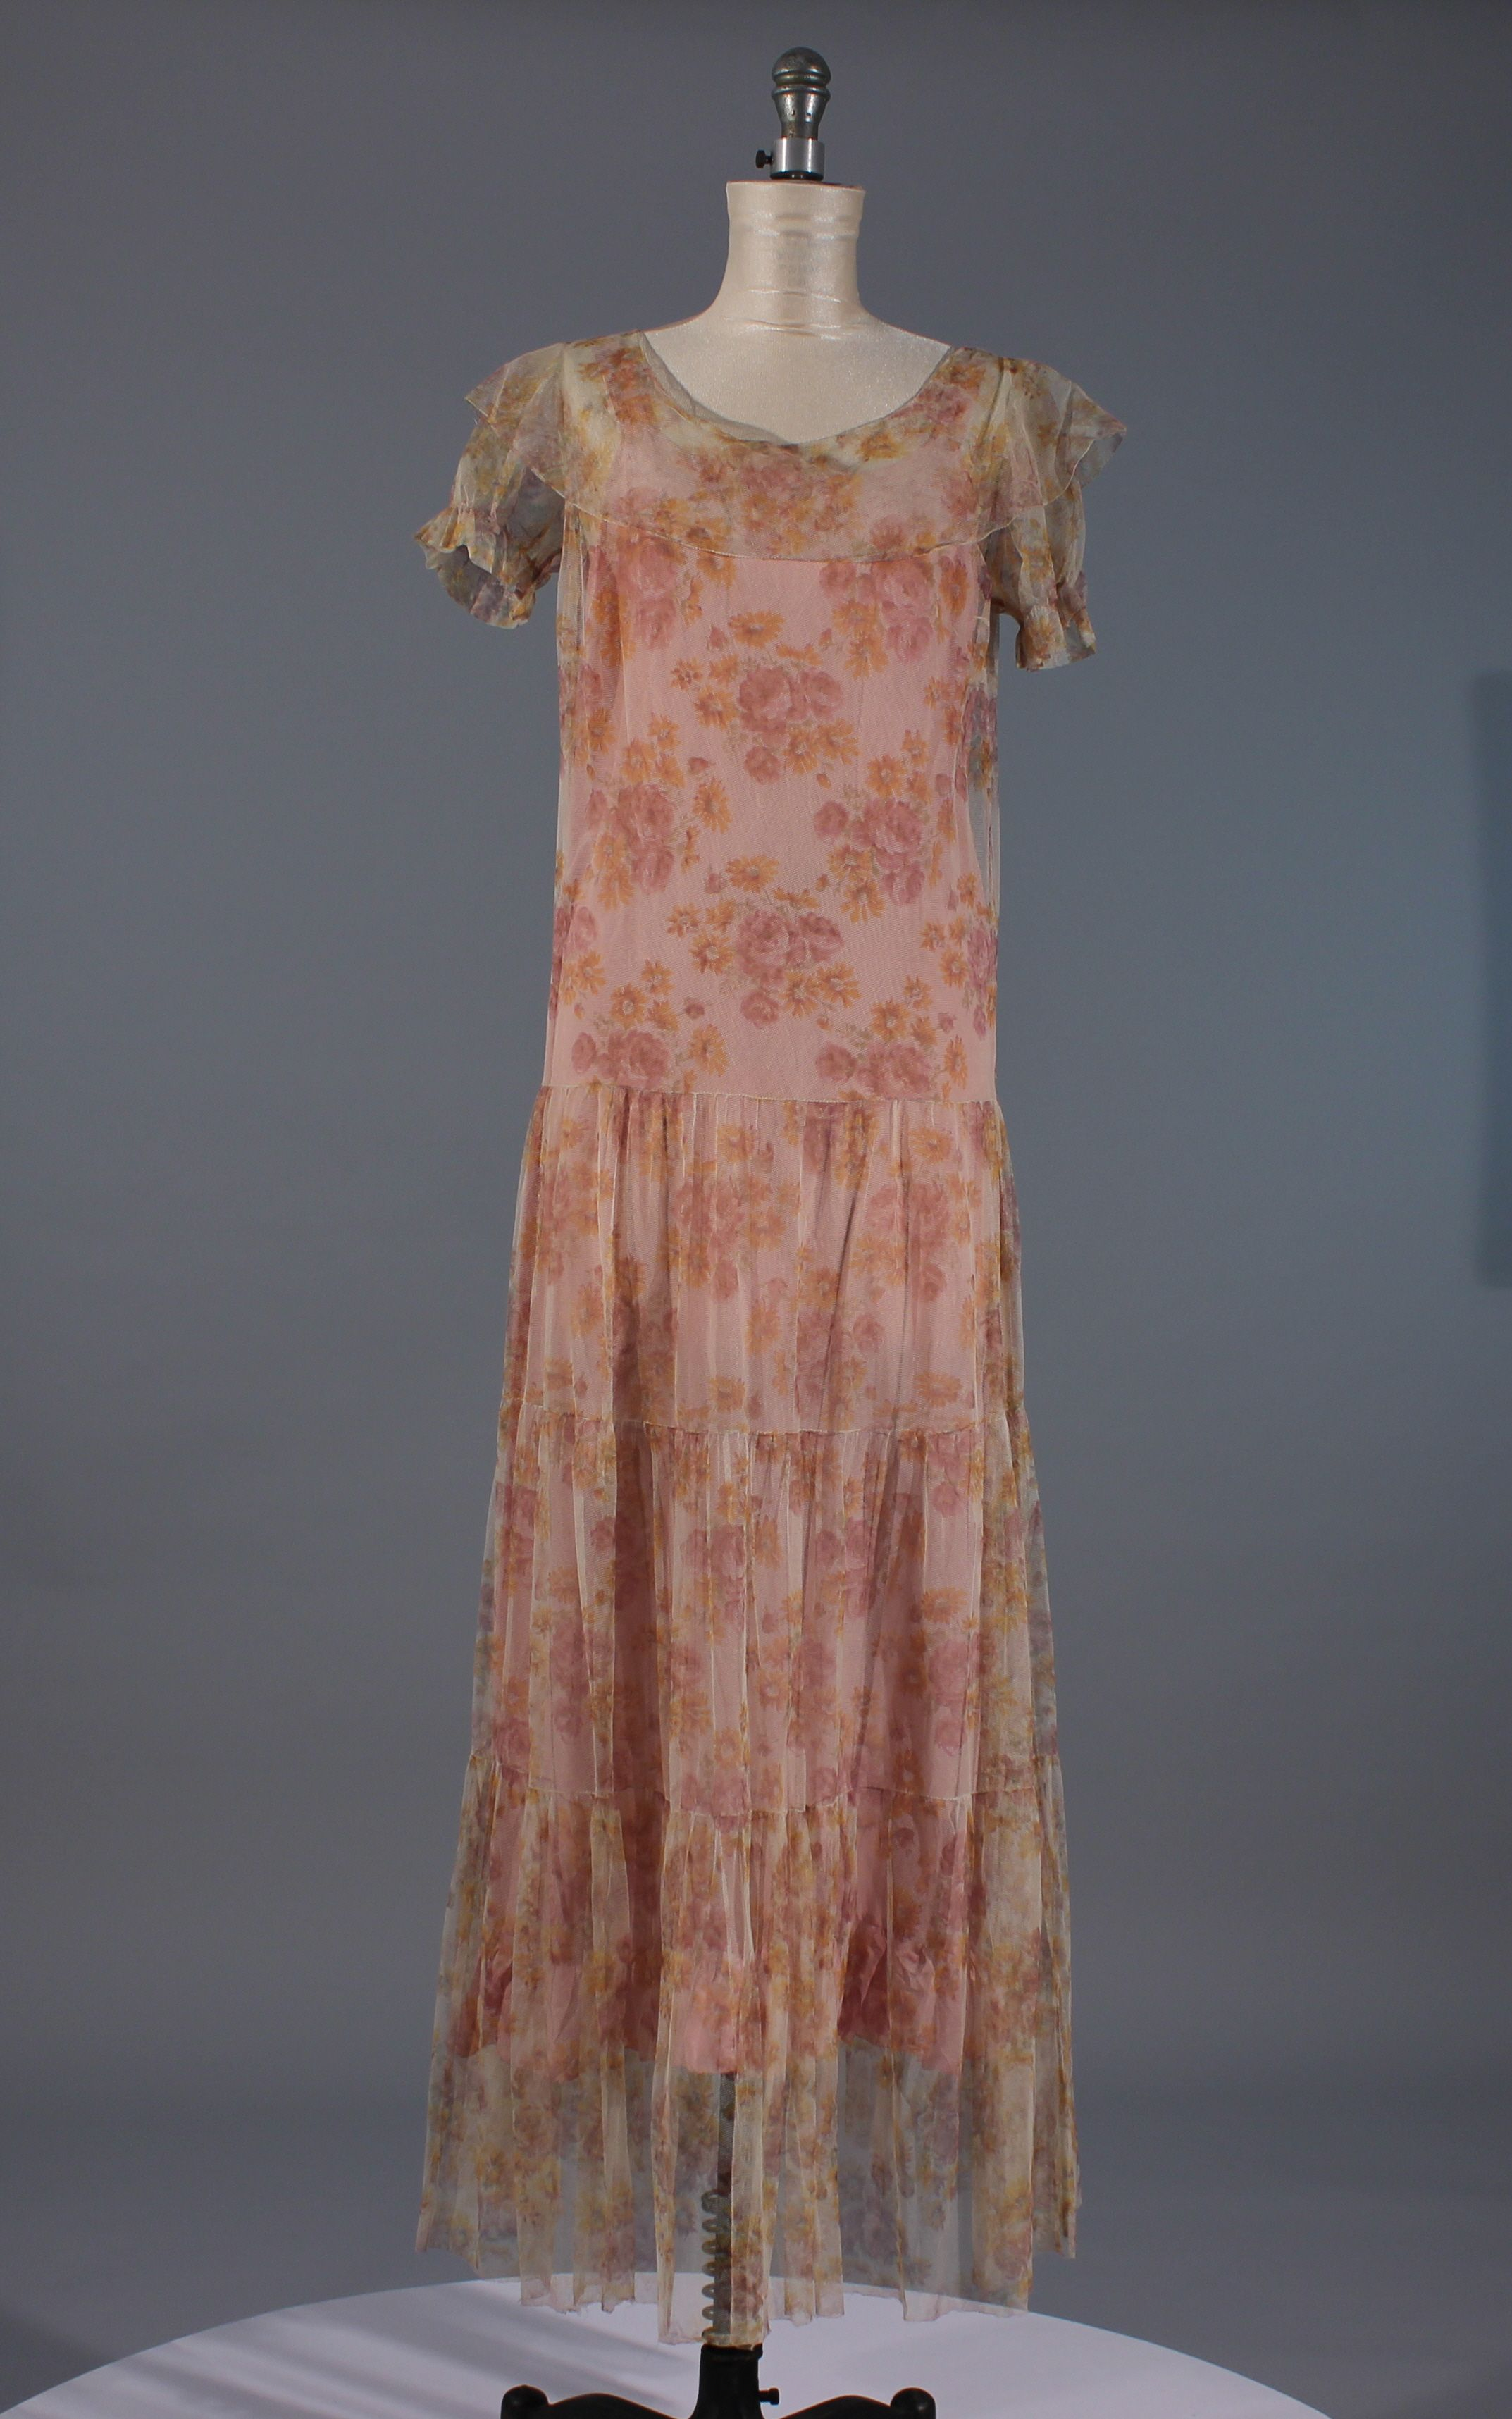 1930s gown | Dotty and Betty | Pinterest | 1930s, Gowns and Vintage ...